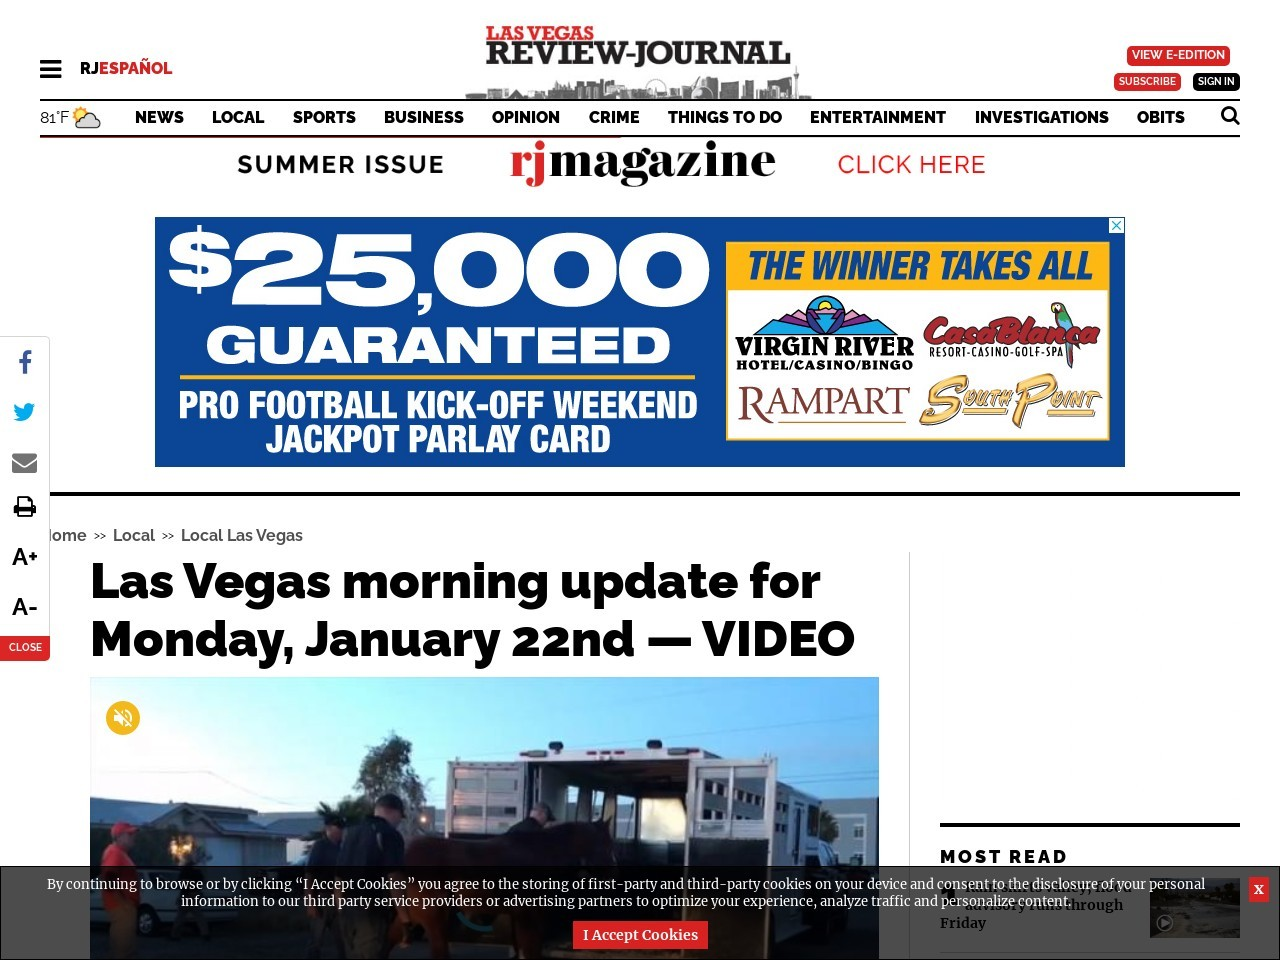 Las Vegas morning update for Monday, January 22nd — VIDEO